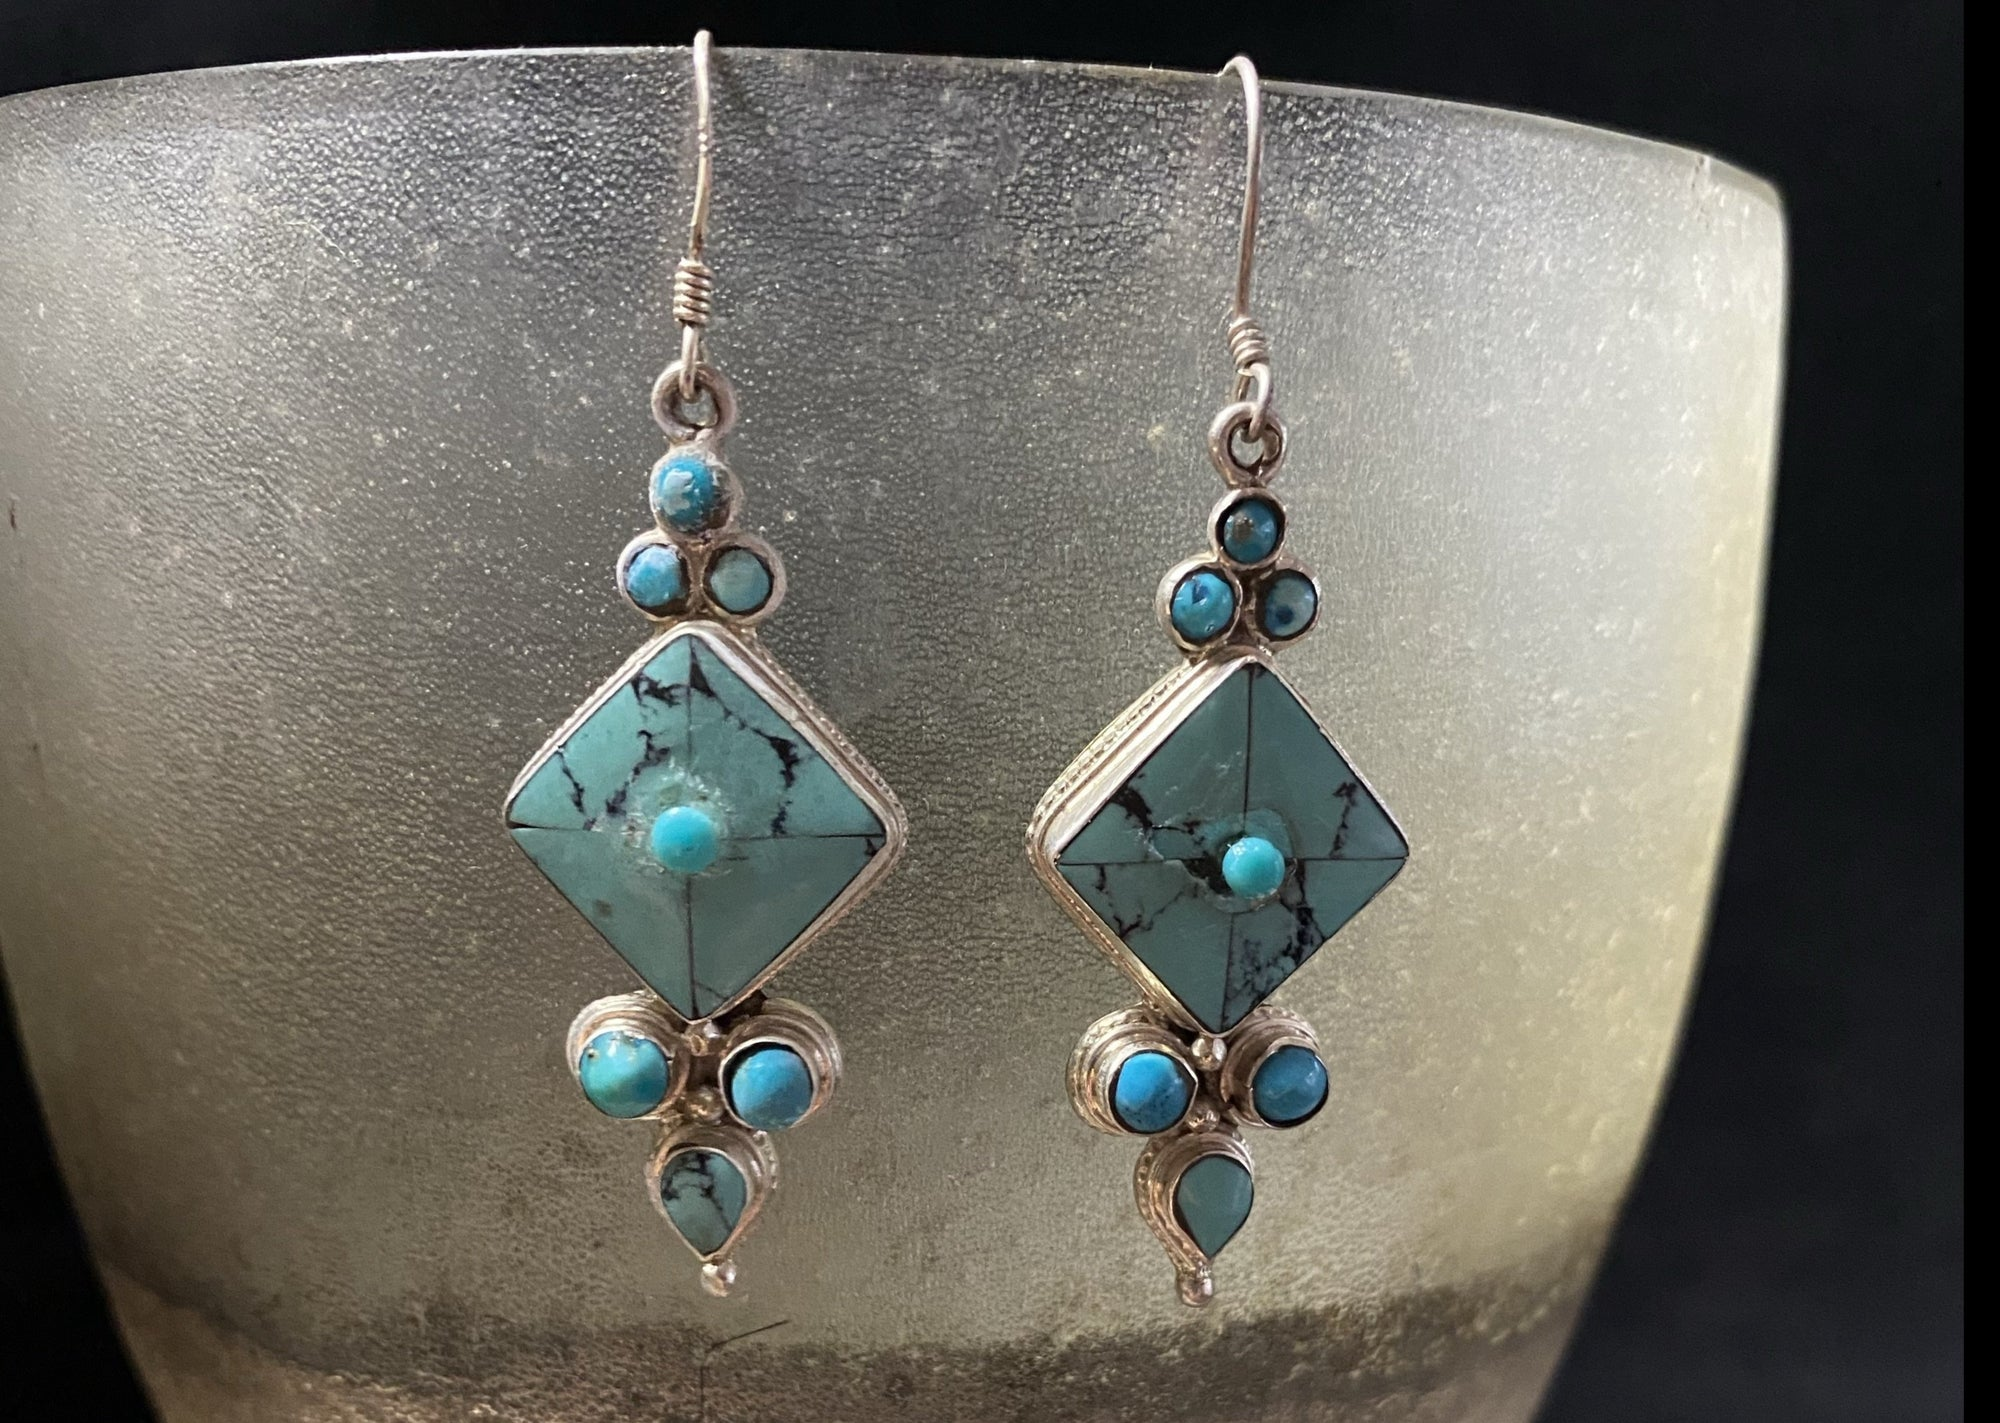 Classic Tibetan earrings, consisting of panels of turquoise set in silver